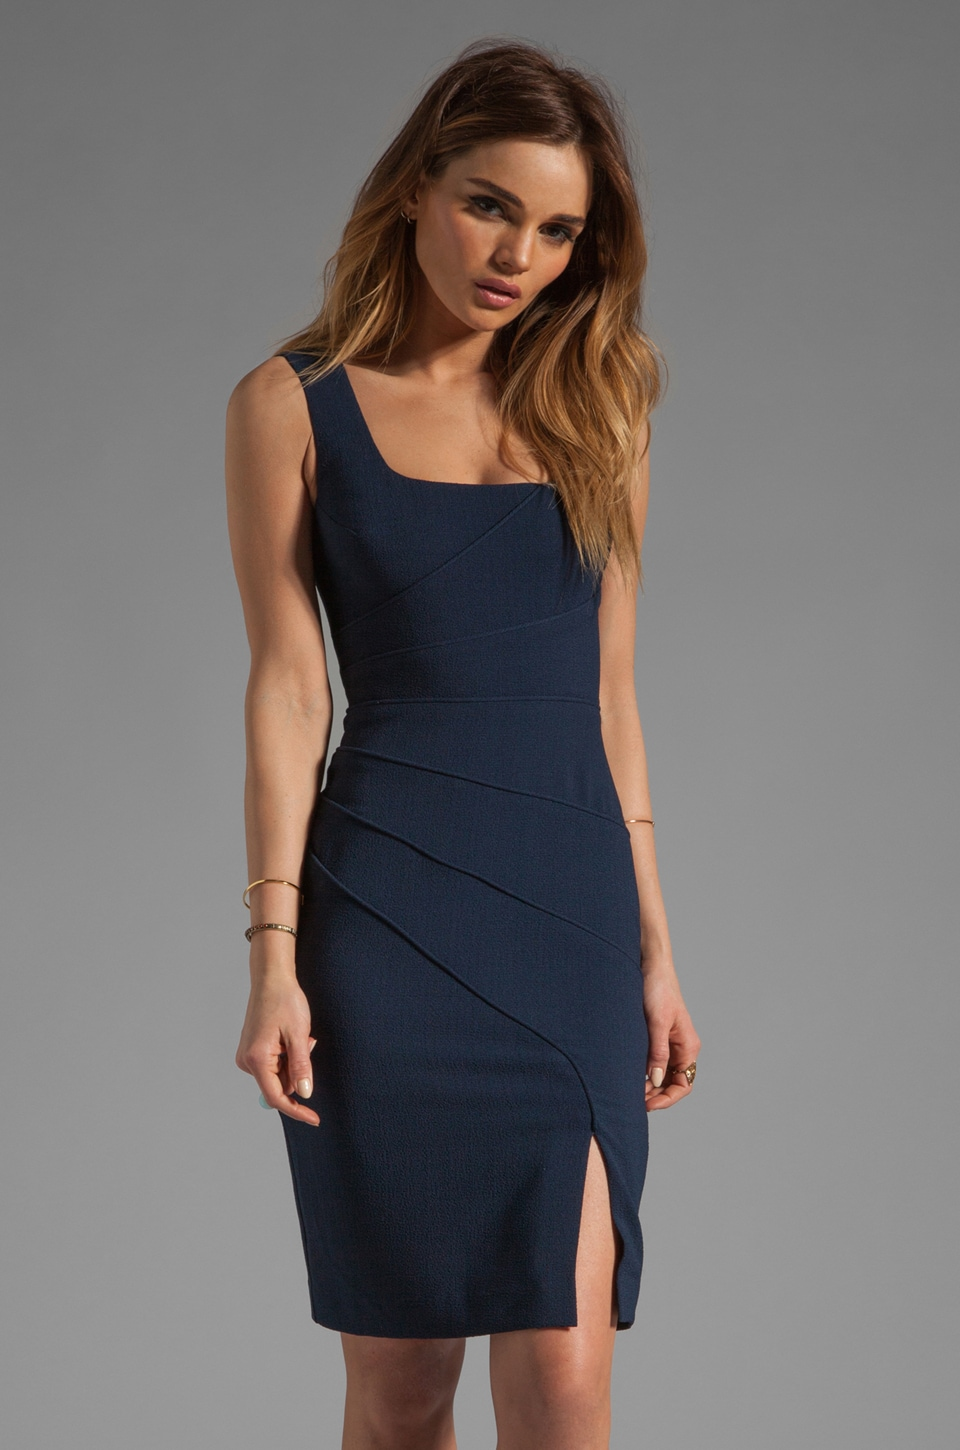 Black Halo Isabella Pebble Crepe Dress in Bluestone